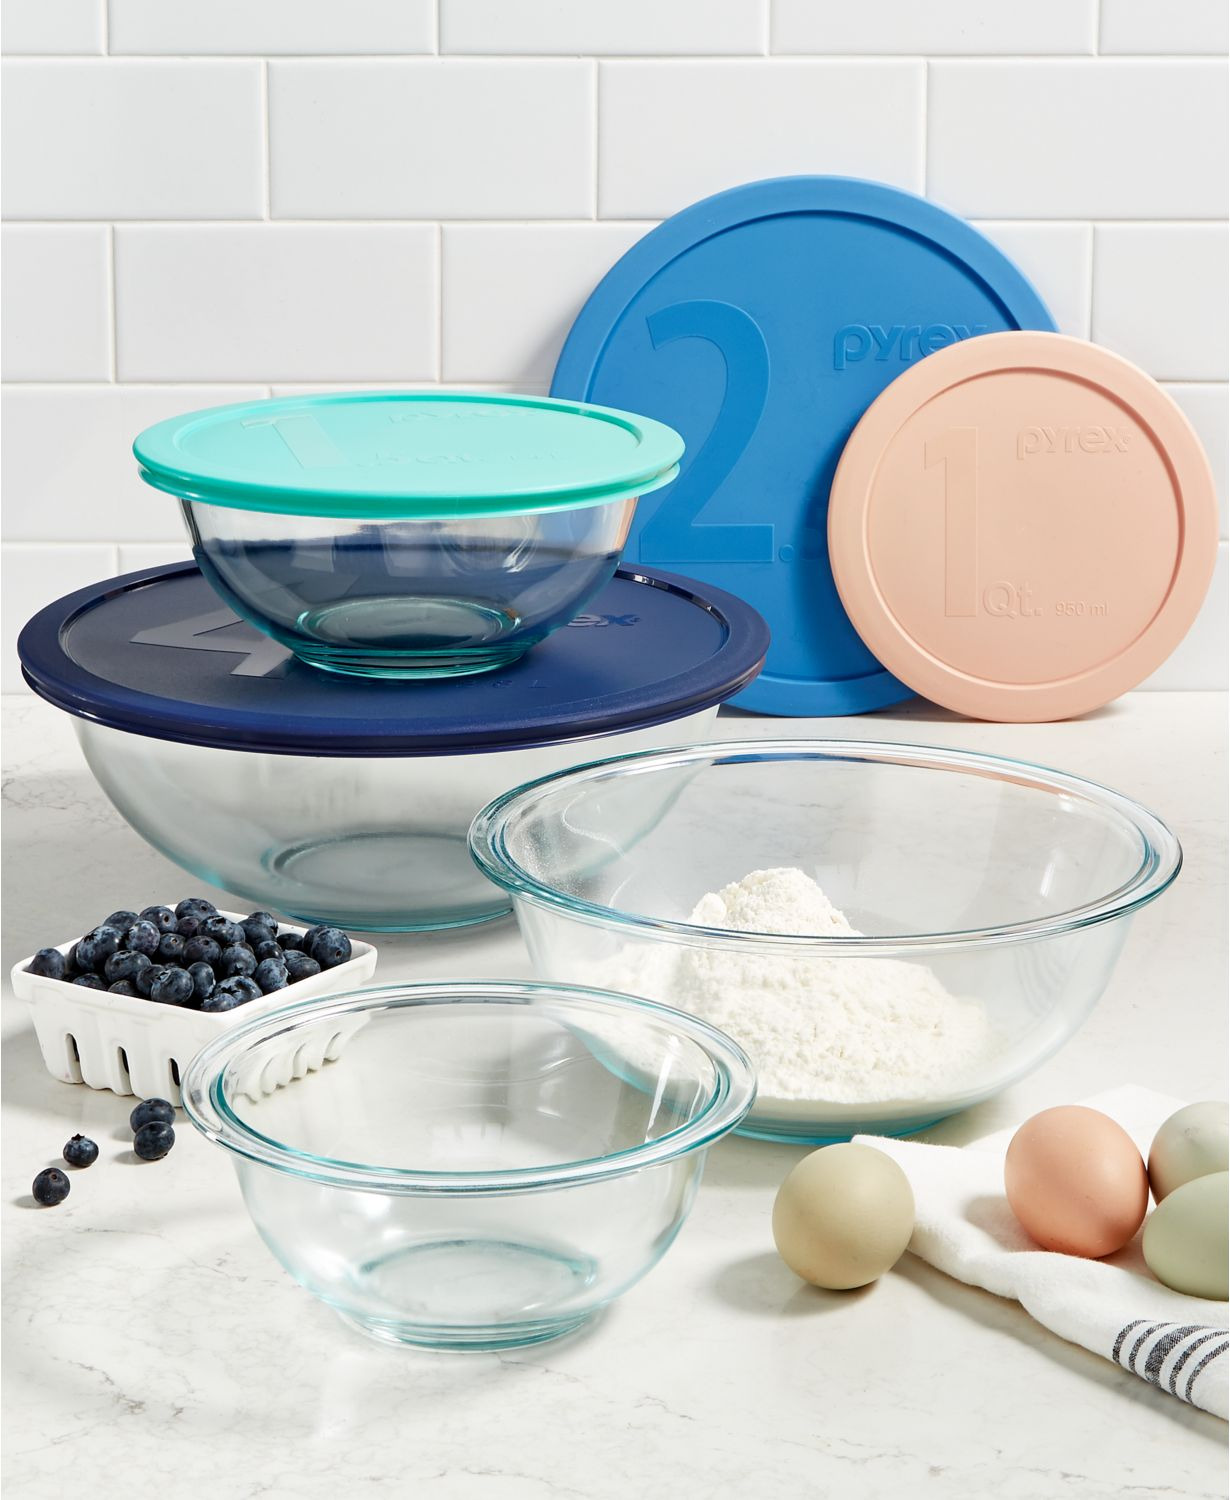 pyrex 8 piece glass mixing bowl set 4 bowls 4 lids 14 99 pyrex 12 piece glass storage set 6 bowls 6 lids 14 99 at macy s free shipping on 25